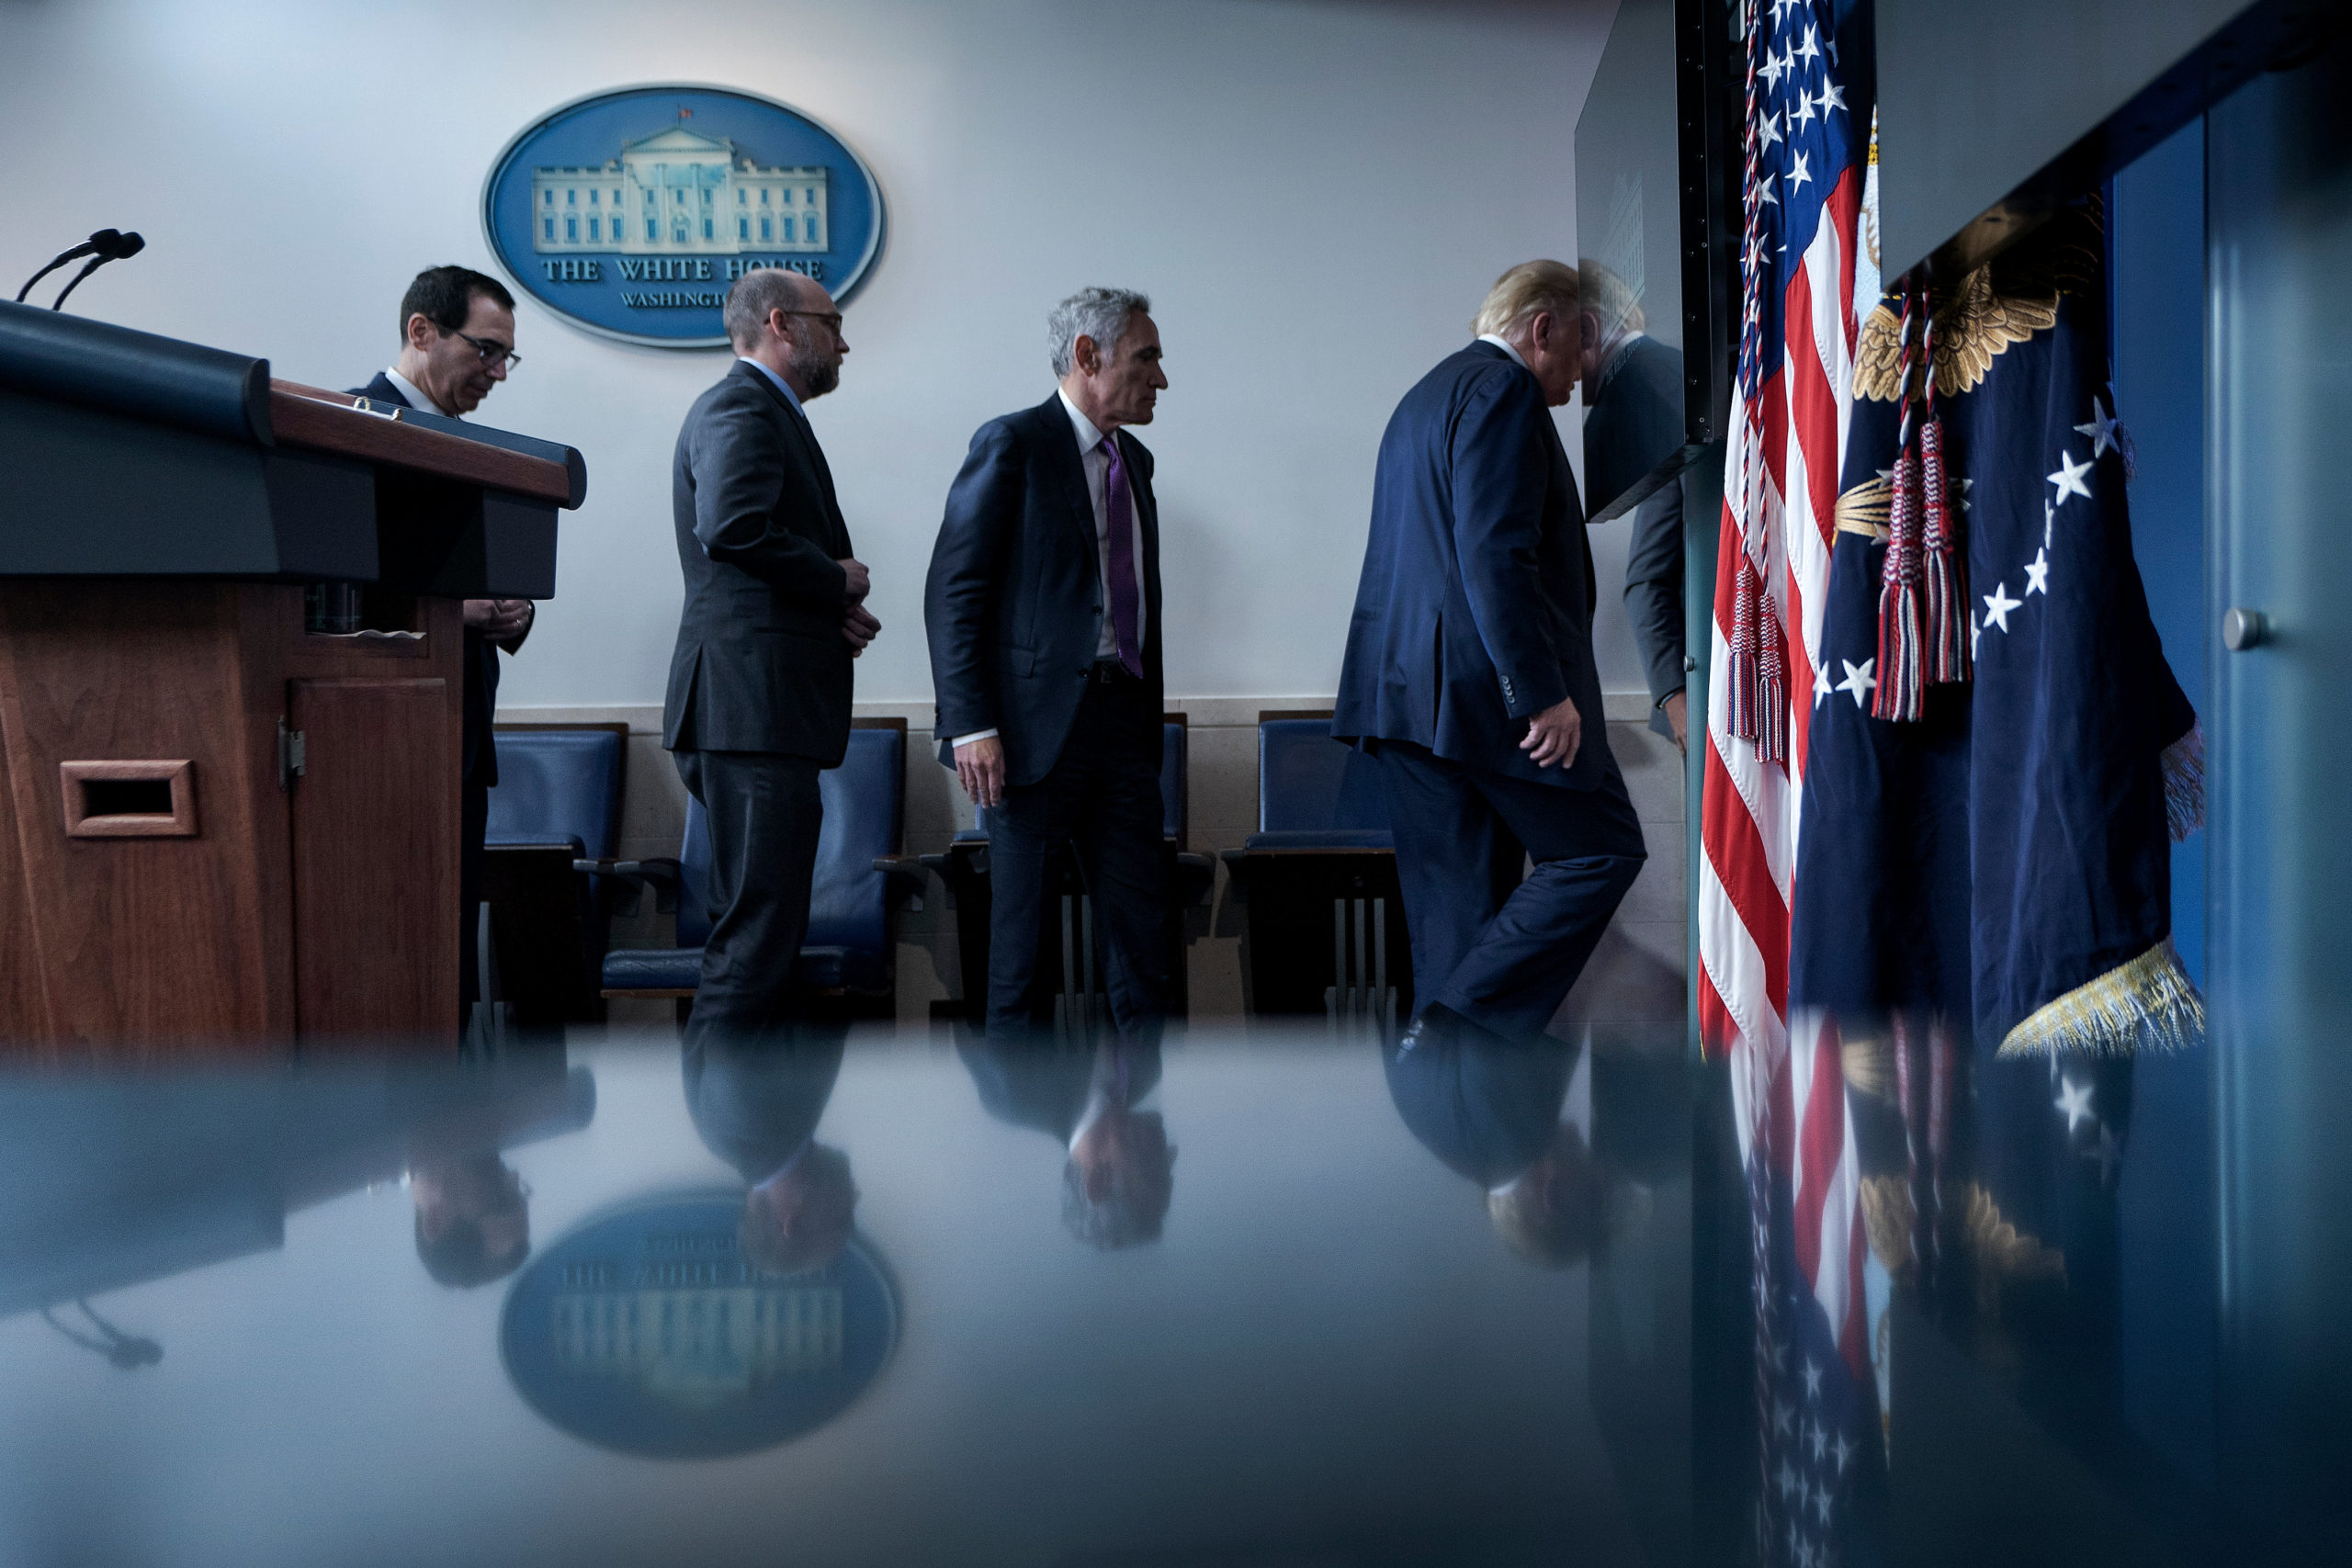 Dr. Scott Atlas follows President Donald Trump as they leave a White House briefing on Aug. 10. (Brendan Smialowski/AFP via Getty Images)